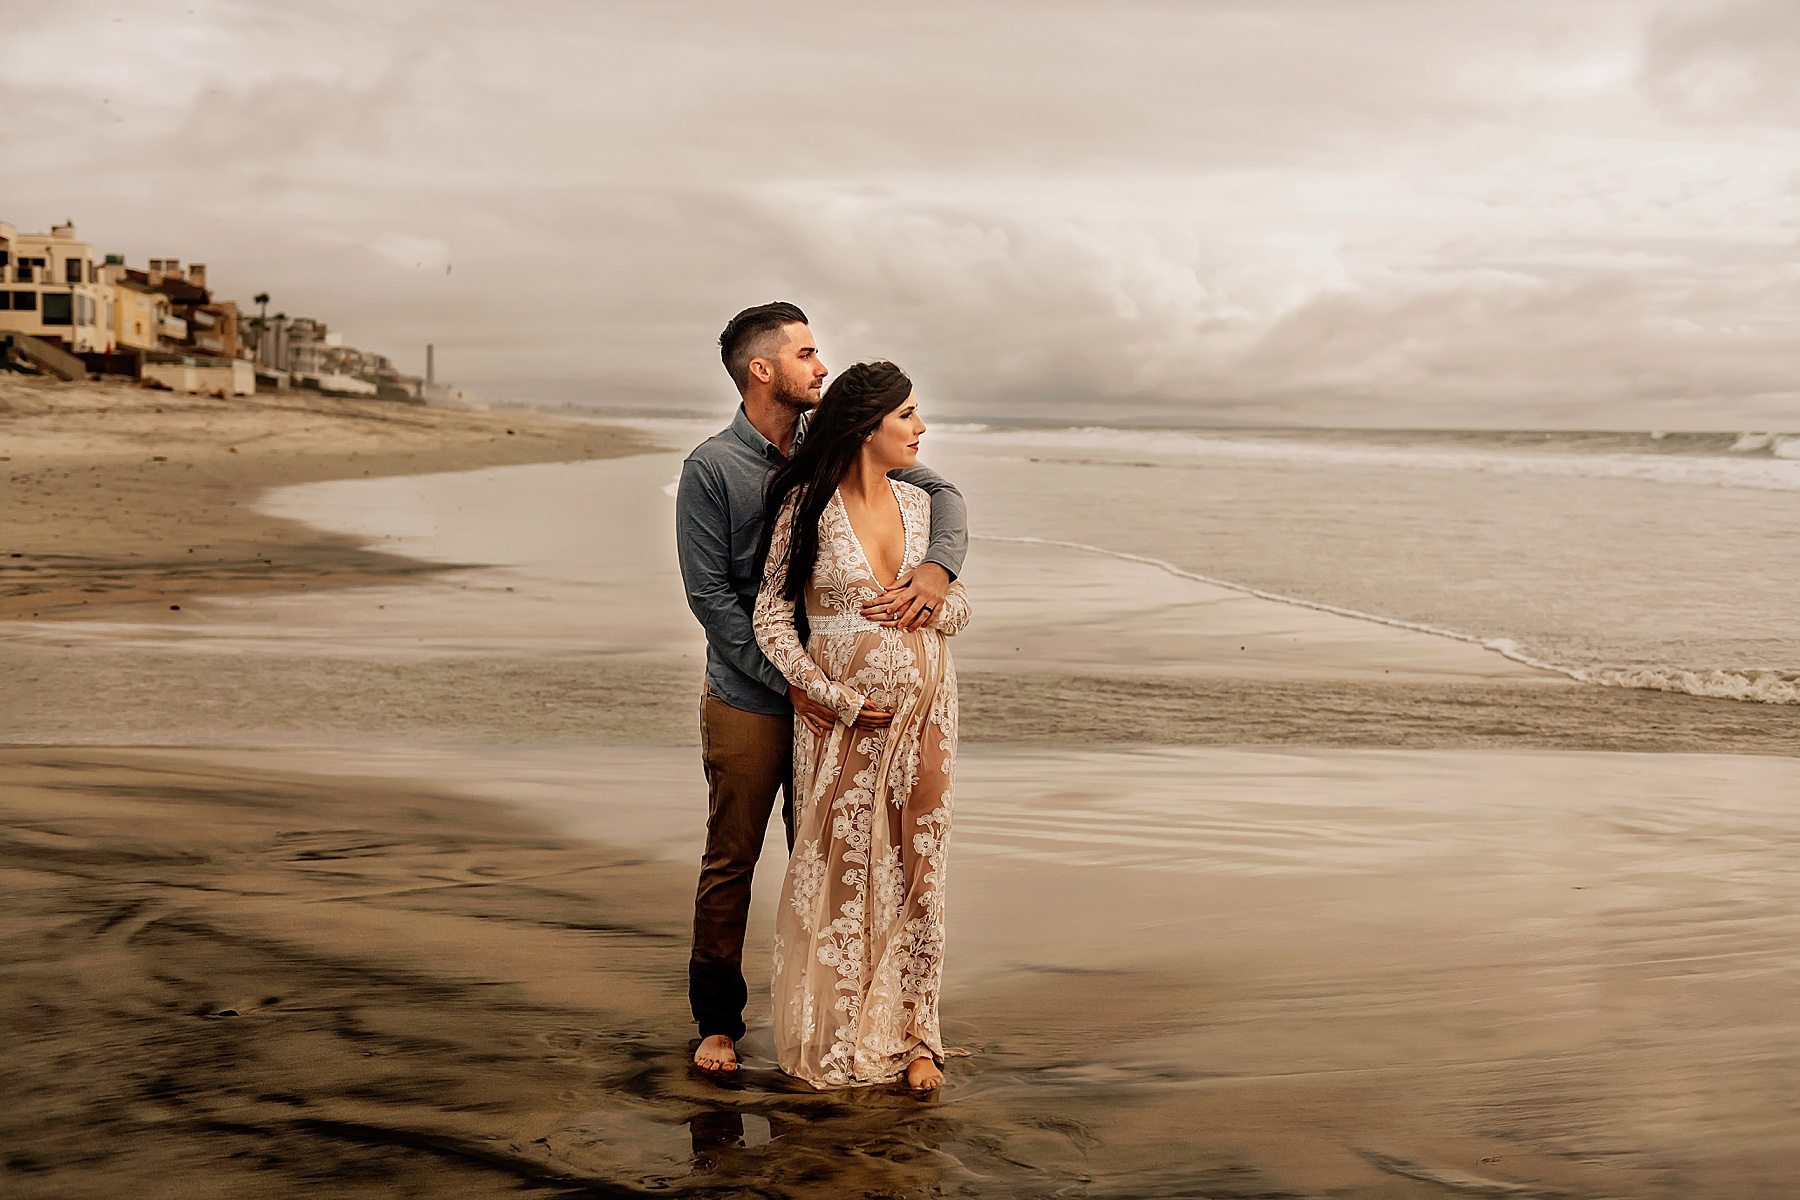 del mar beach maternity pictures couple